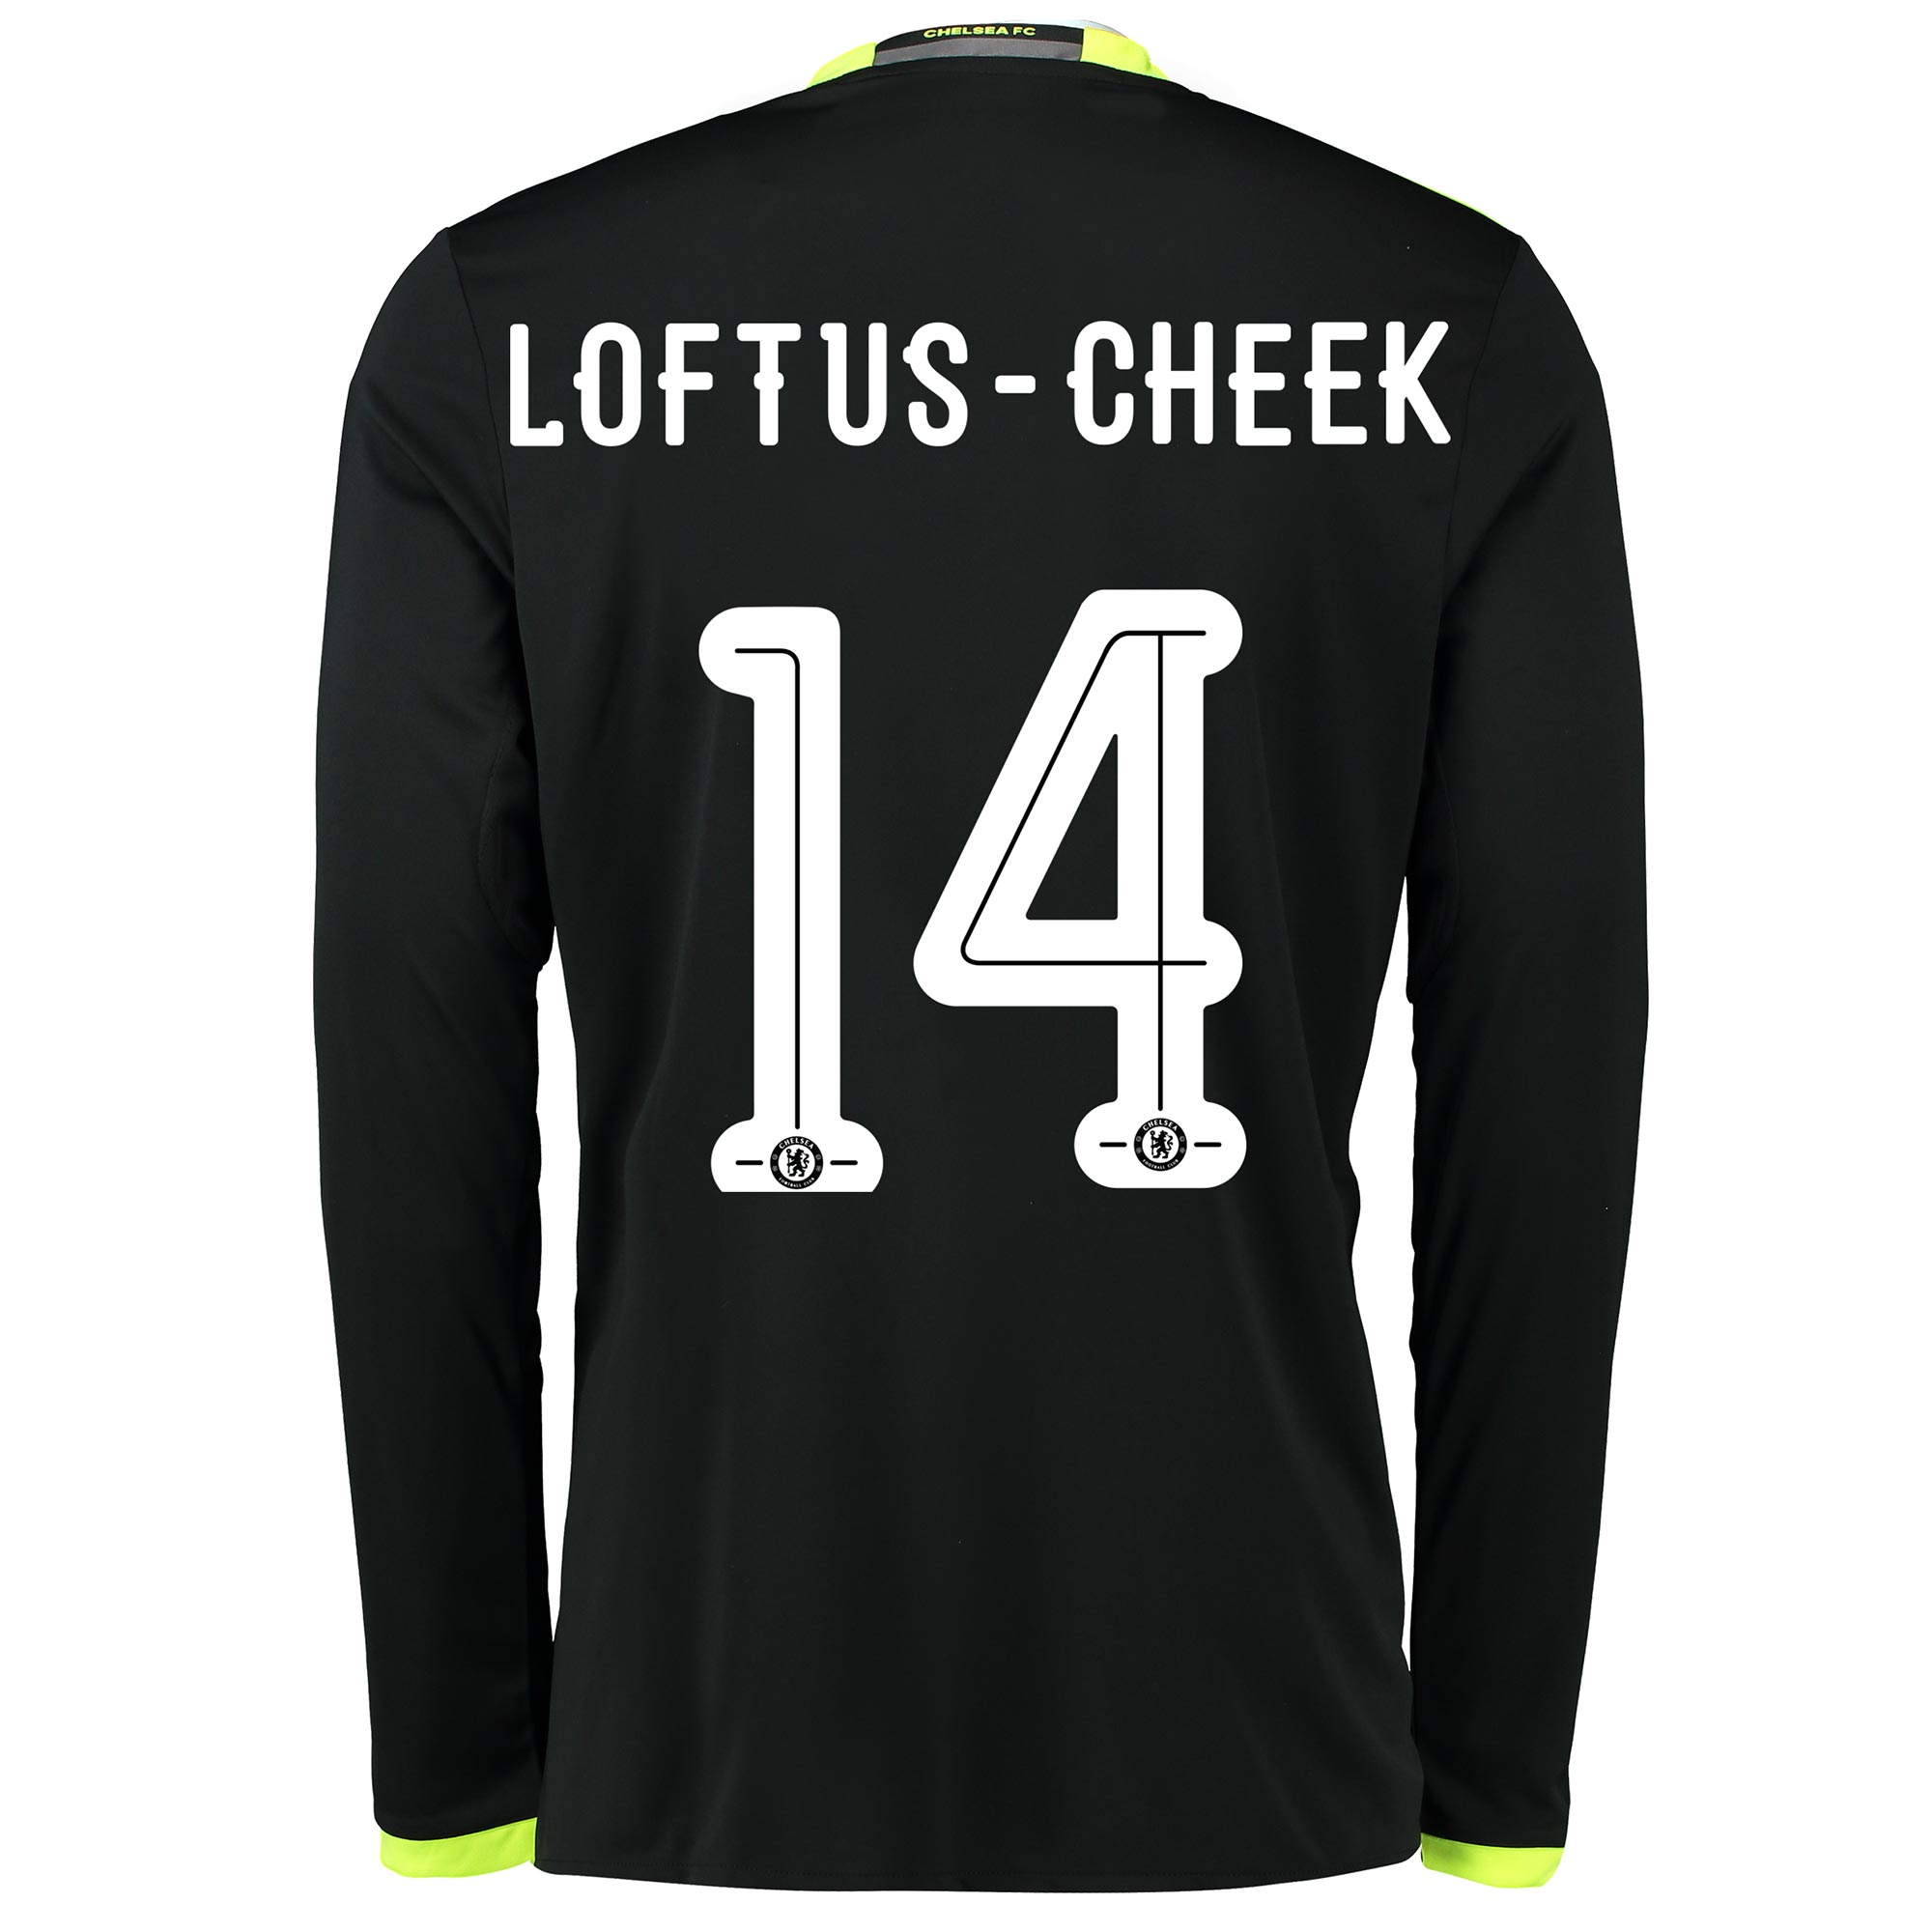 Chelsea Linear Away Shirt 16-17 - Long Sleeve with Loftus-Cheek 14 pri